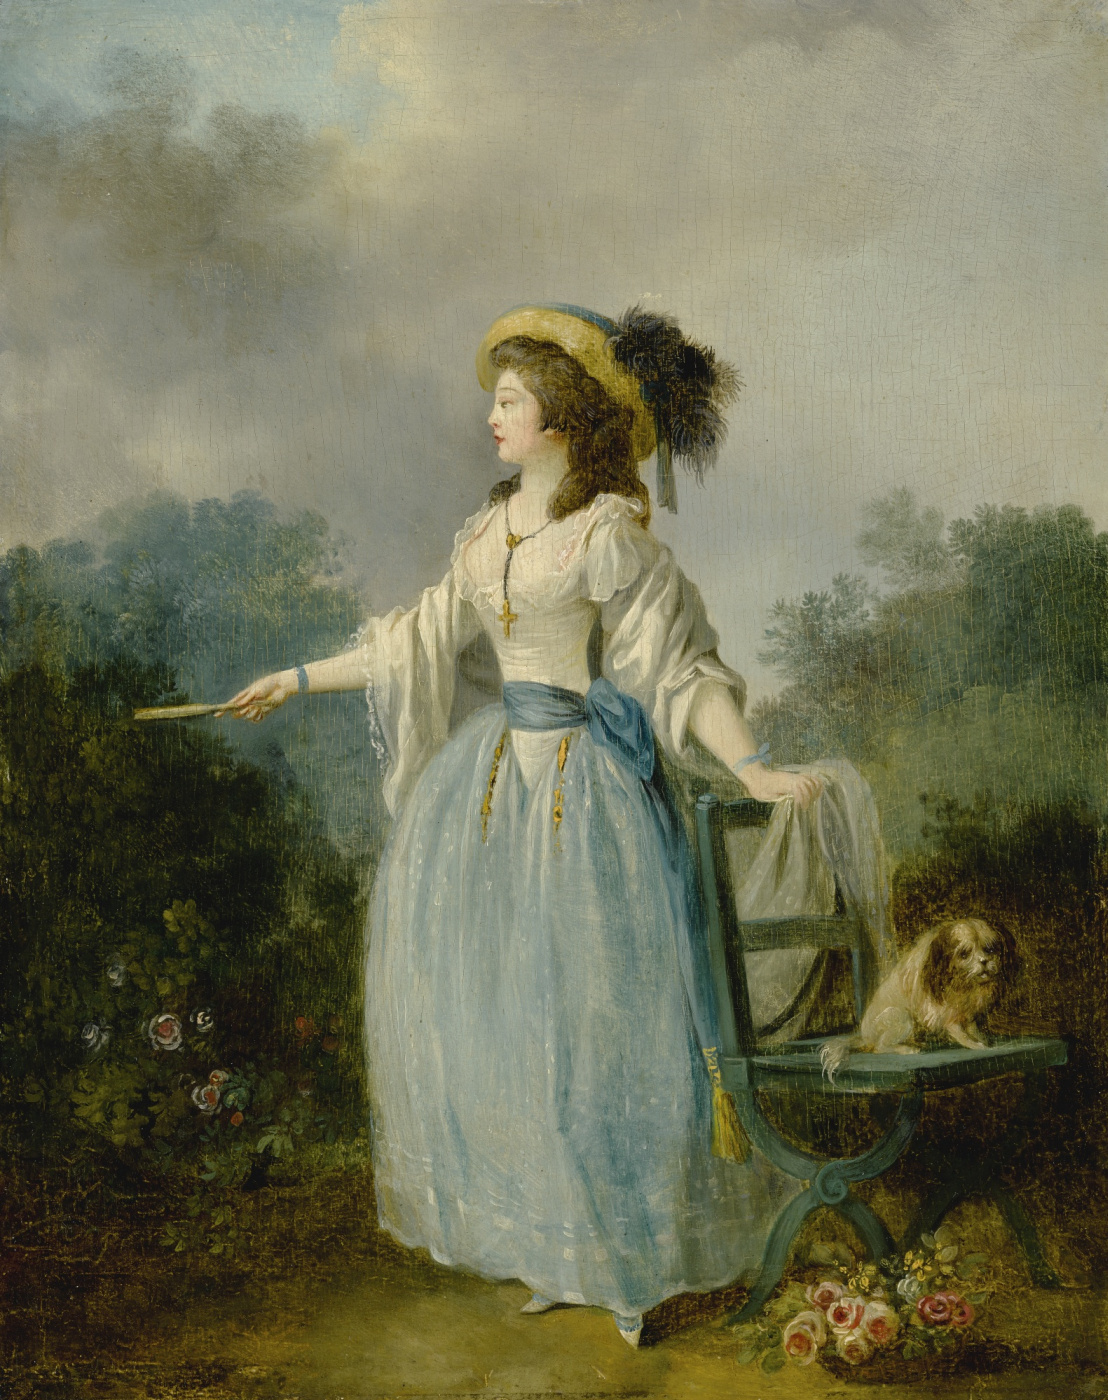 Jean-Frederick Schall. Lady with a dog in the garden